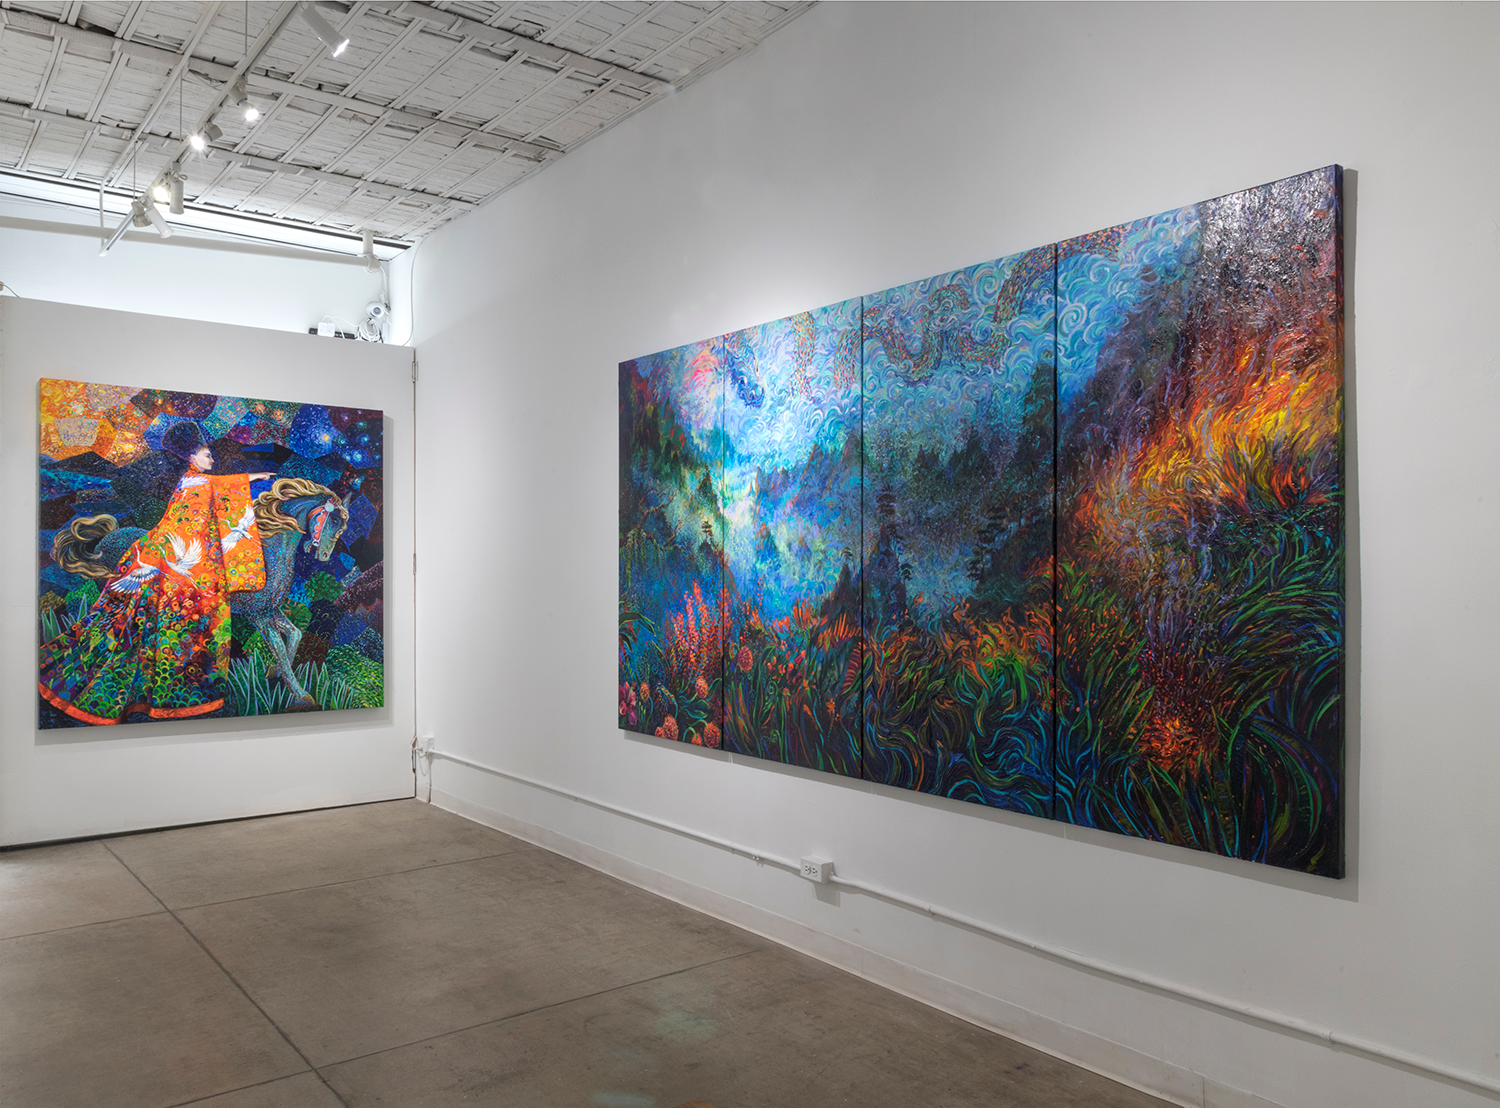 Original artworks by finger painting artist Iris Scott shown in the Filo Sofi Arts NYC gallery.png